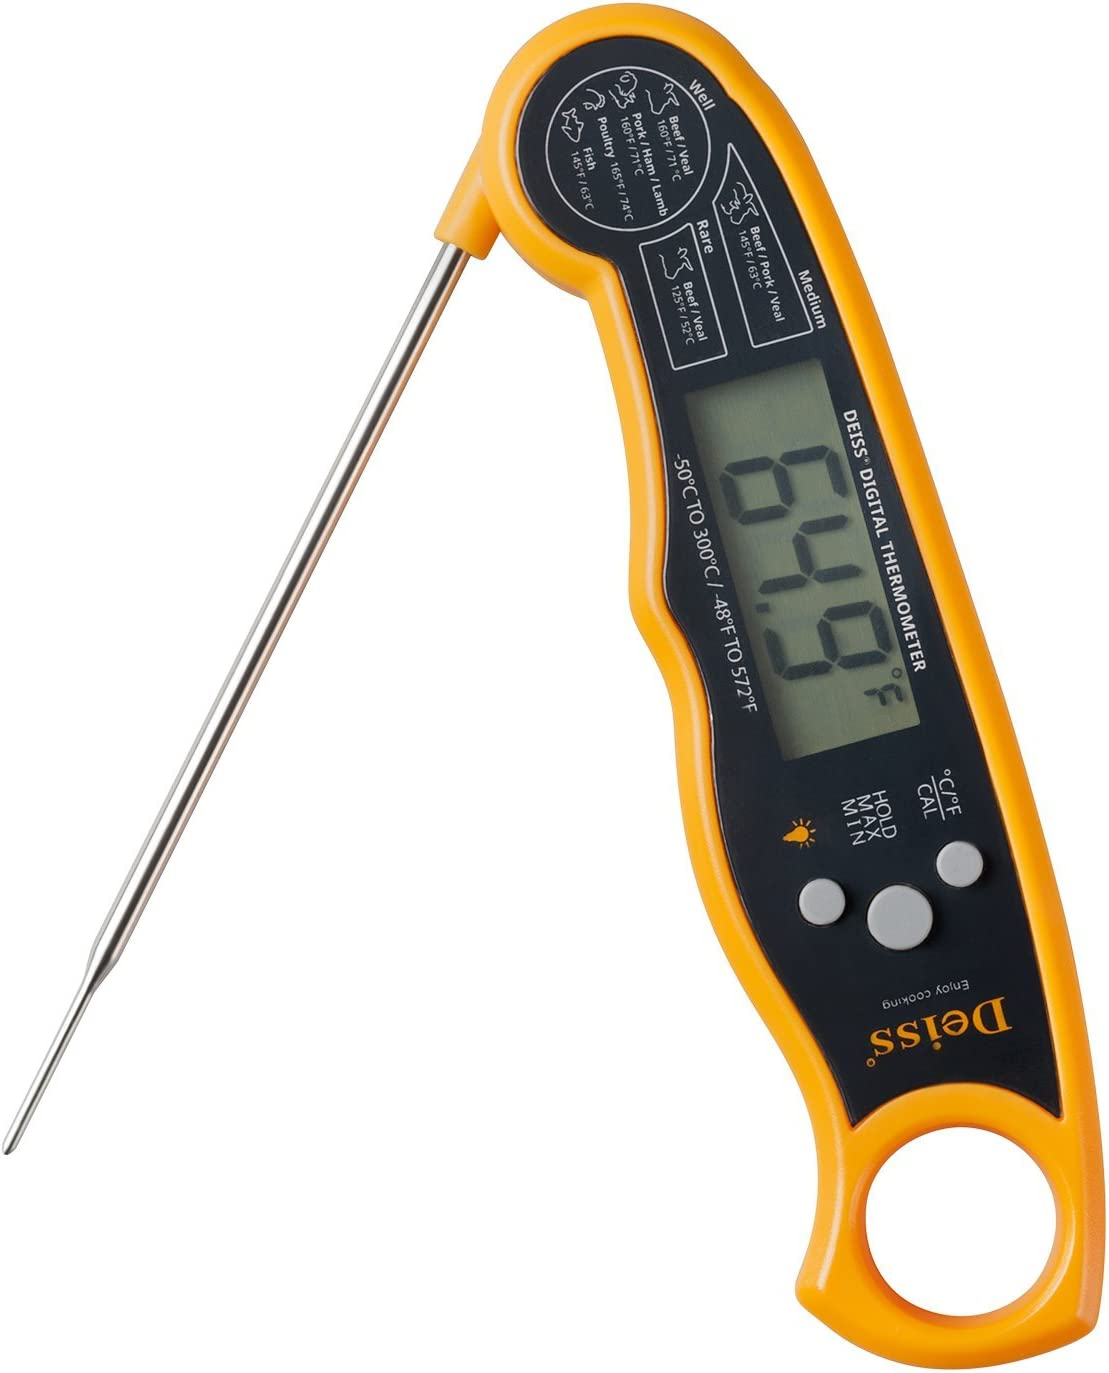 Deiss PRO Digital Meat Thermometer – Lightning Fast Precise Readings with Backlight Display